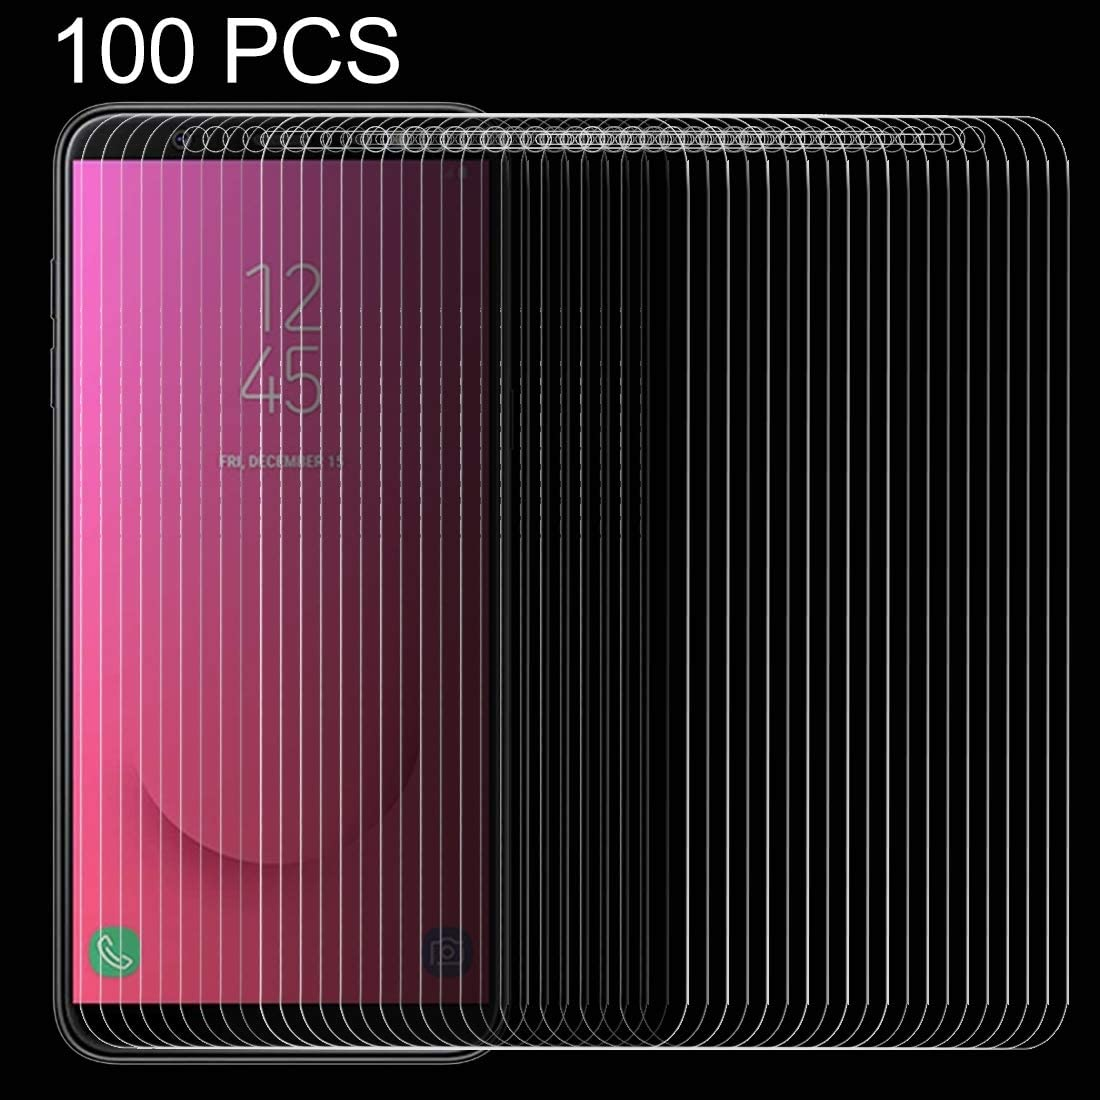 2018 GzPuluz Glass Protector Film 100 PCS 0.26mm 9H 2.5D Tempered Glass Film for Galaxy J8